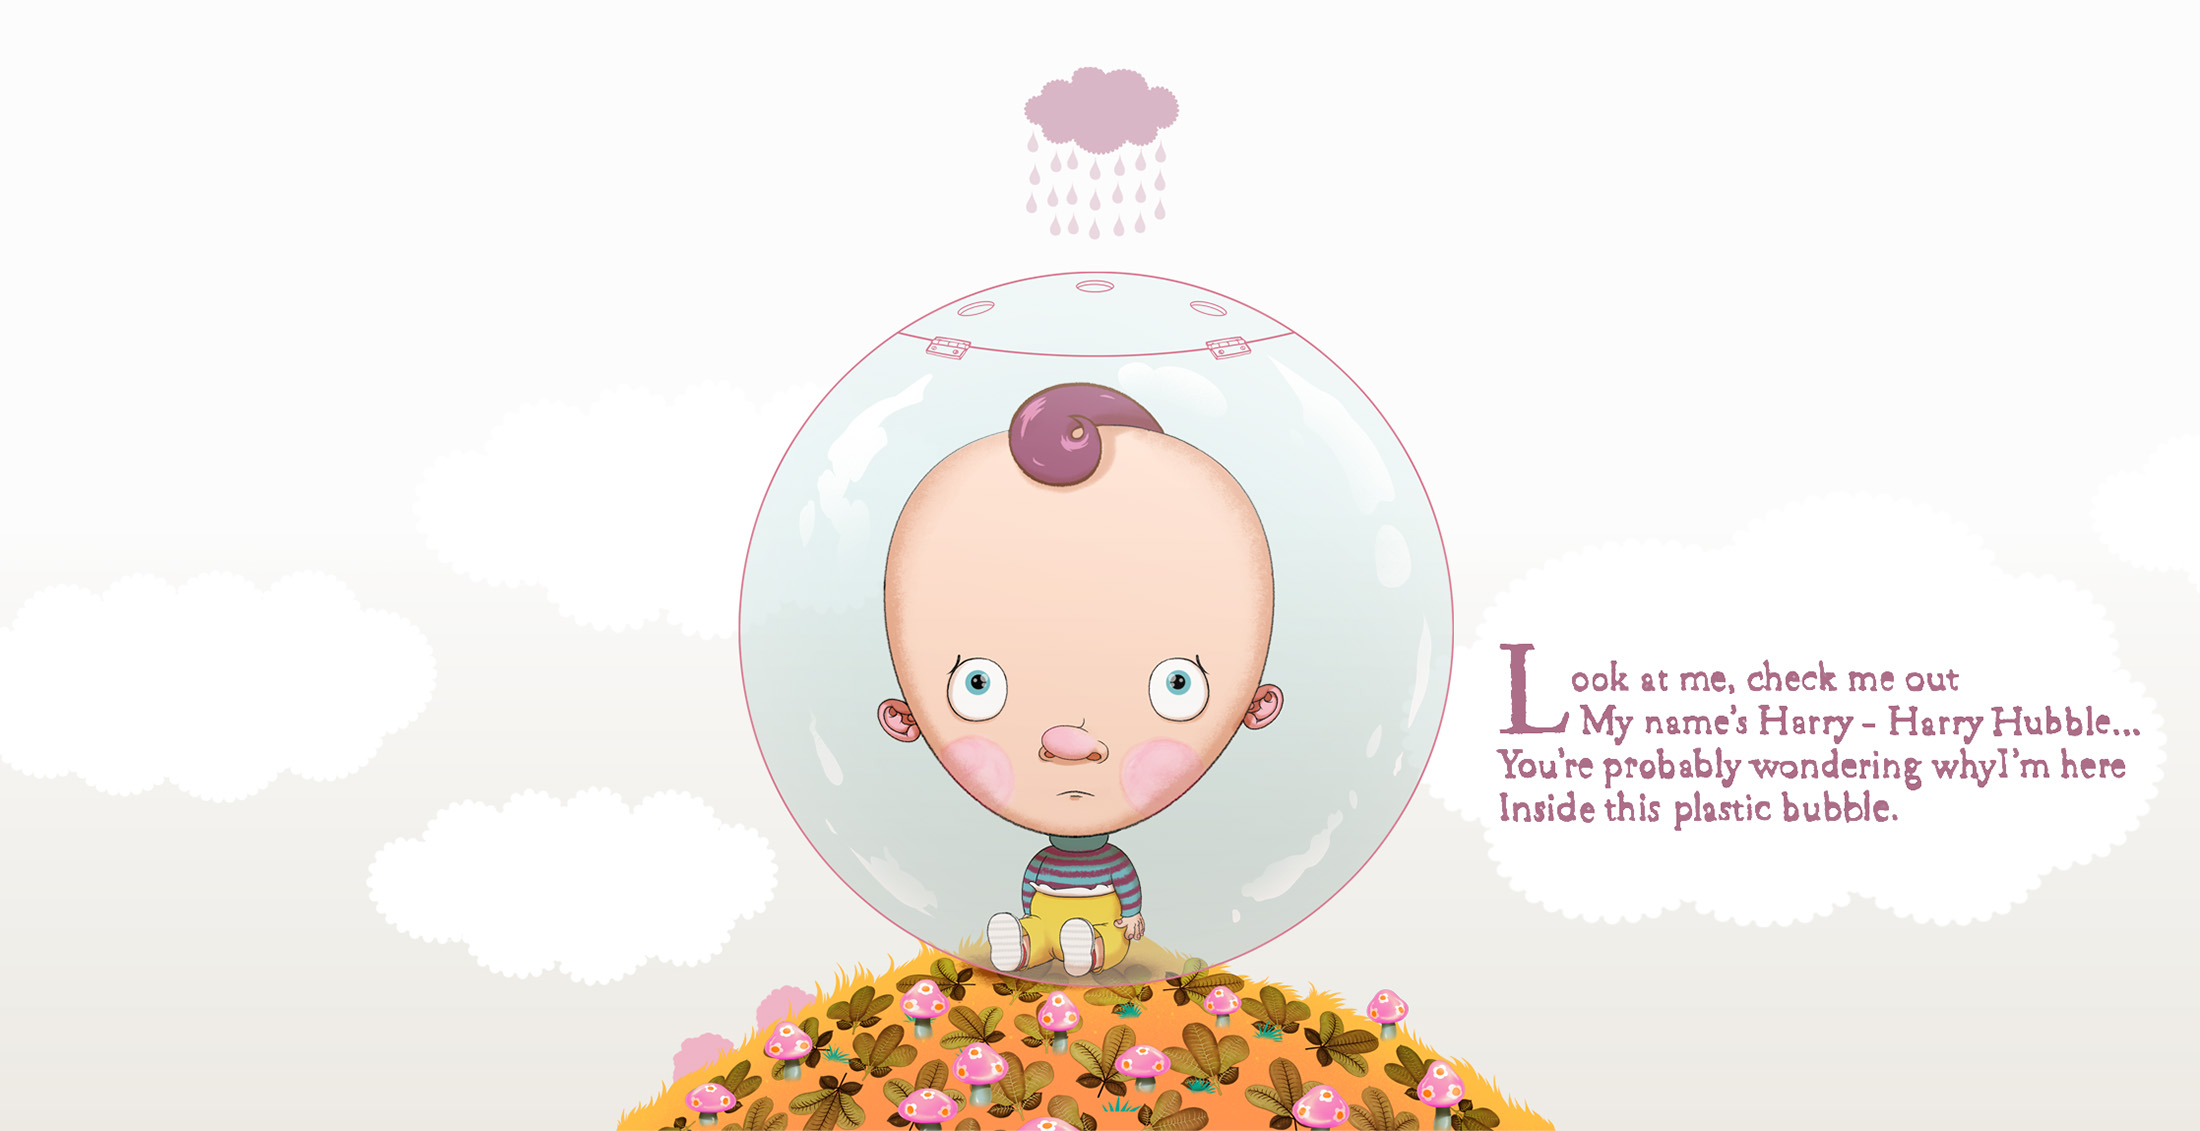 - Commissioned by JWT New York for Huggies, this press, mail & web campaign saw the creation of a faux children's book 'Harry Hubble the Boy In The Plastic Bubble'. A spin-off interactive animated website followed.